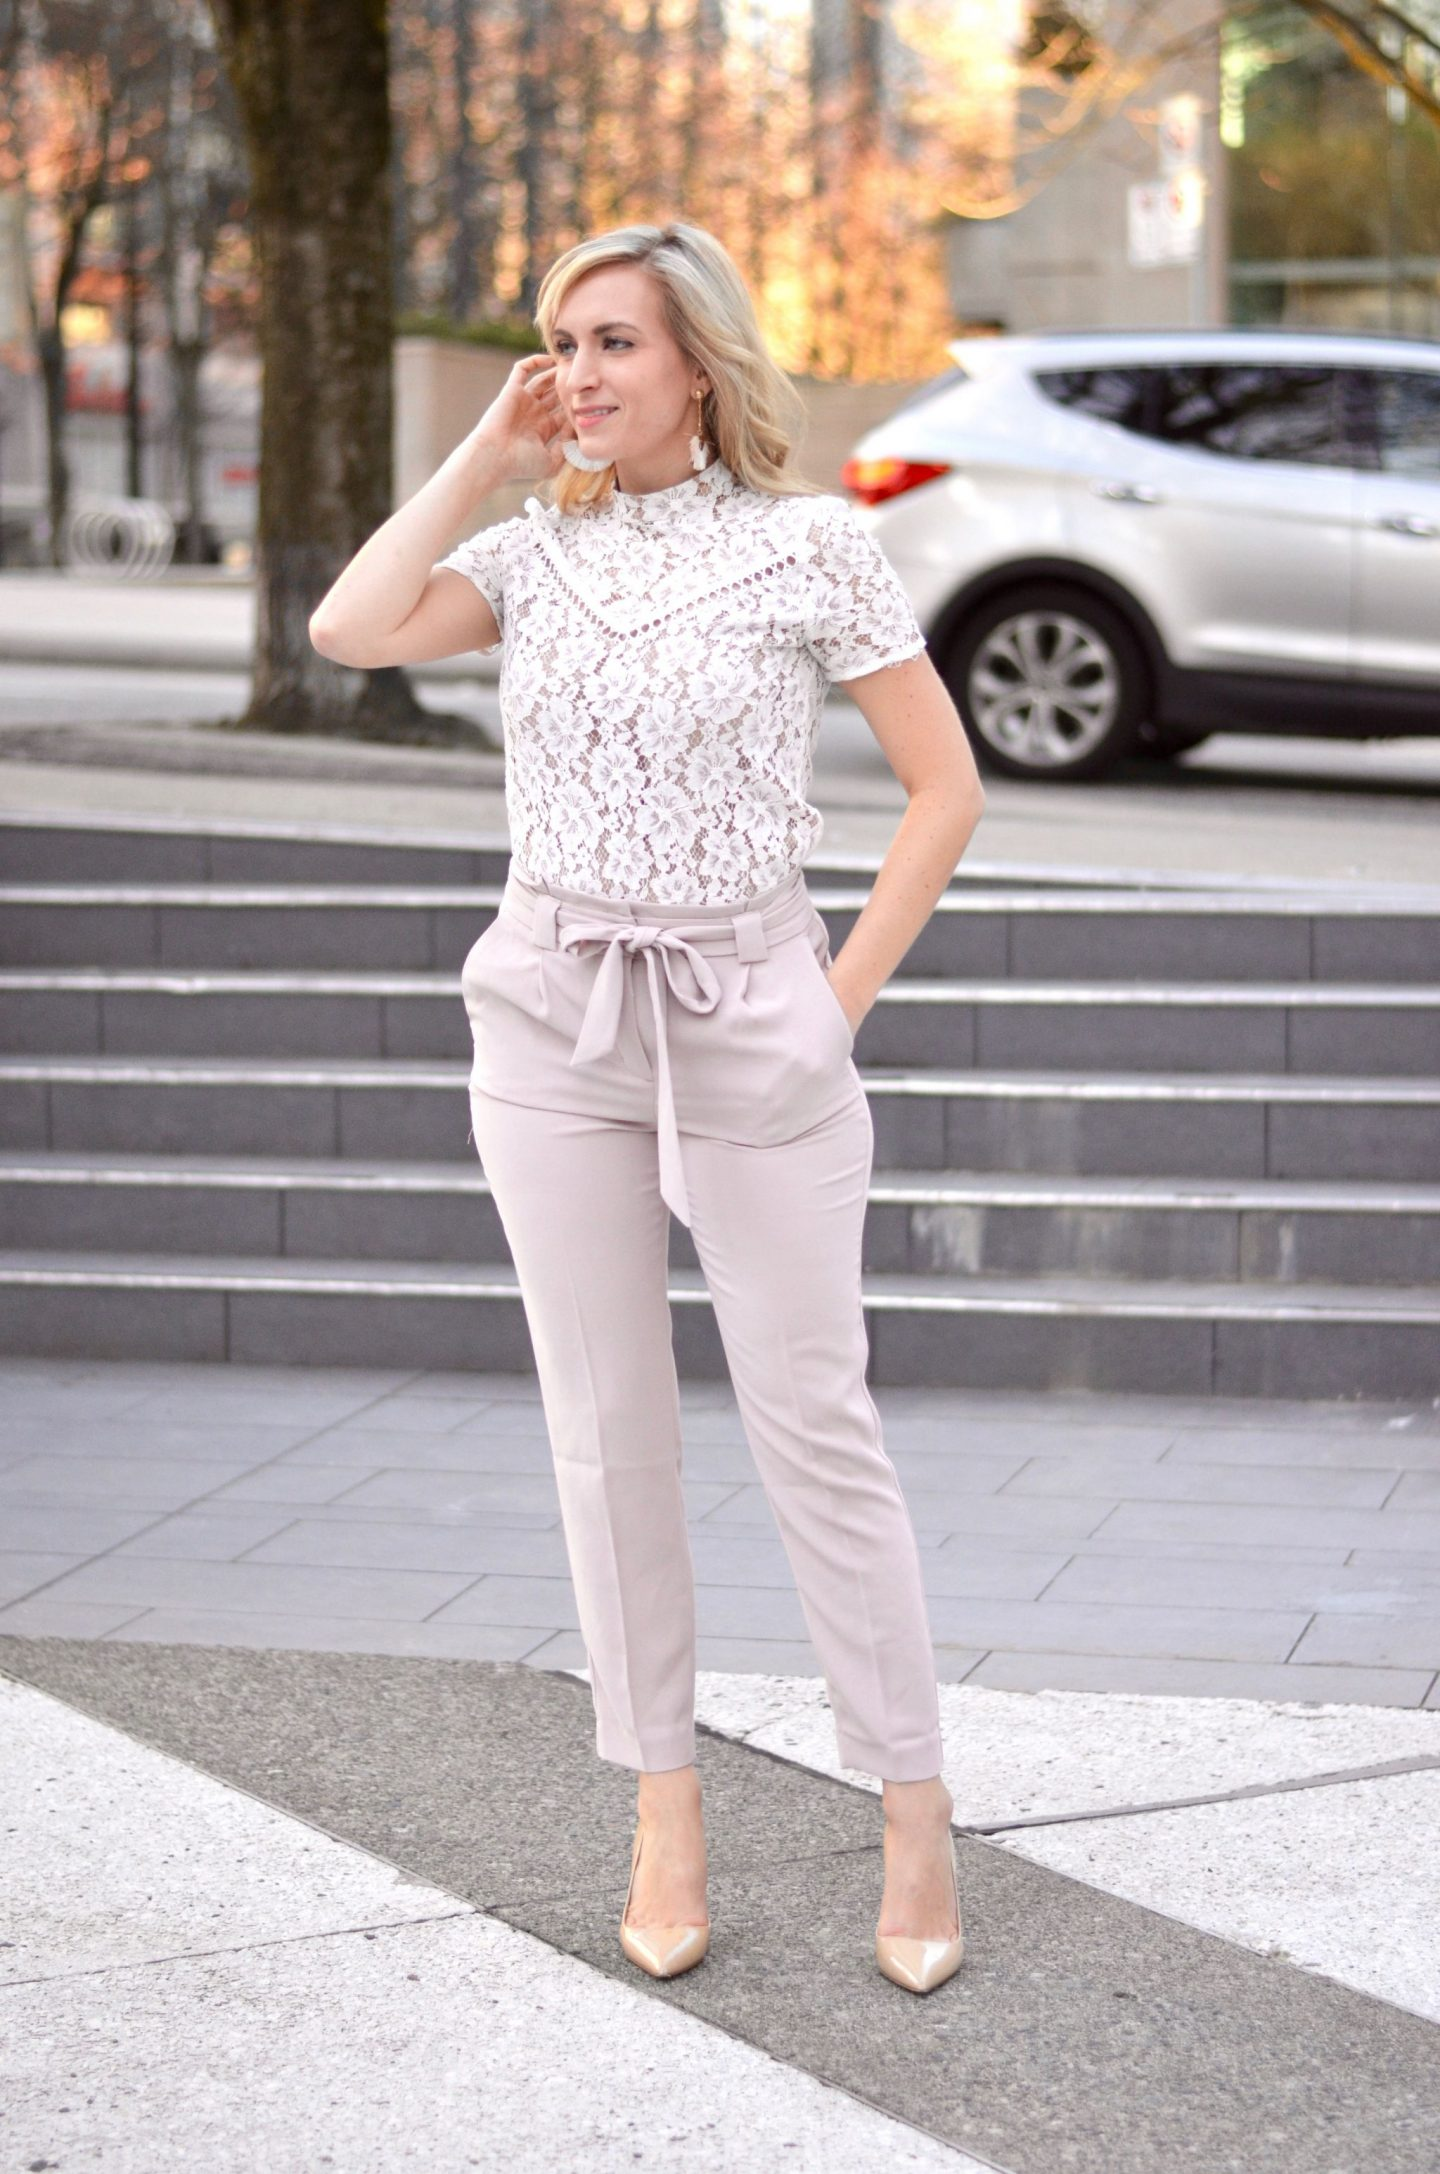 Look - How to pastel wear colored jeans video